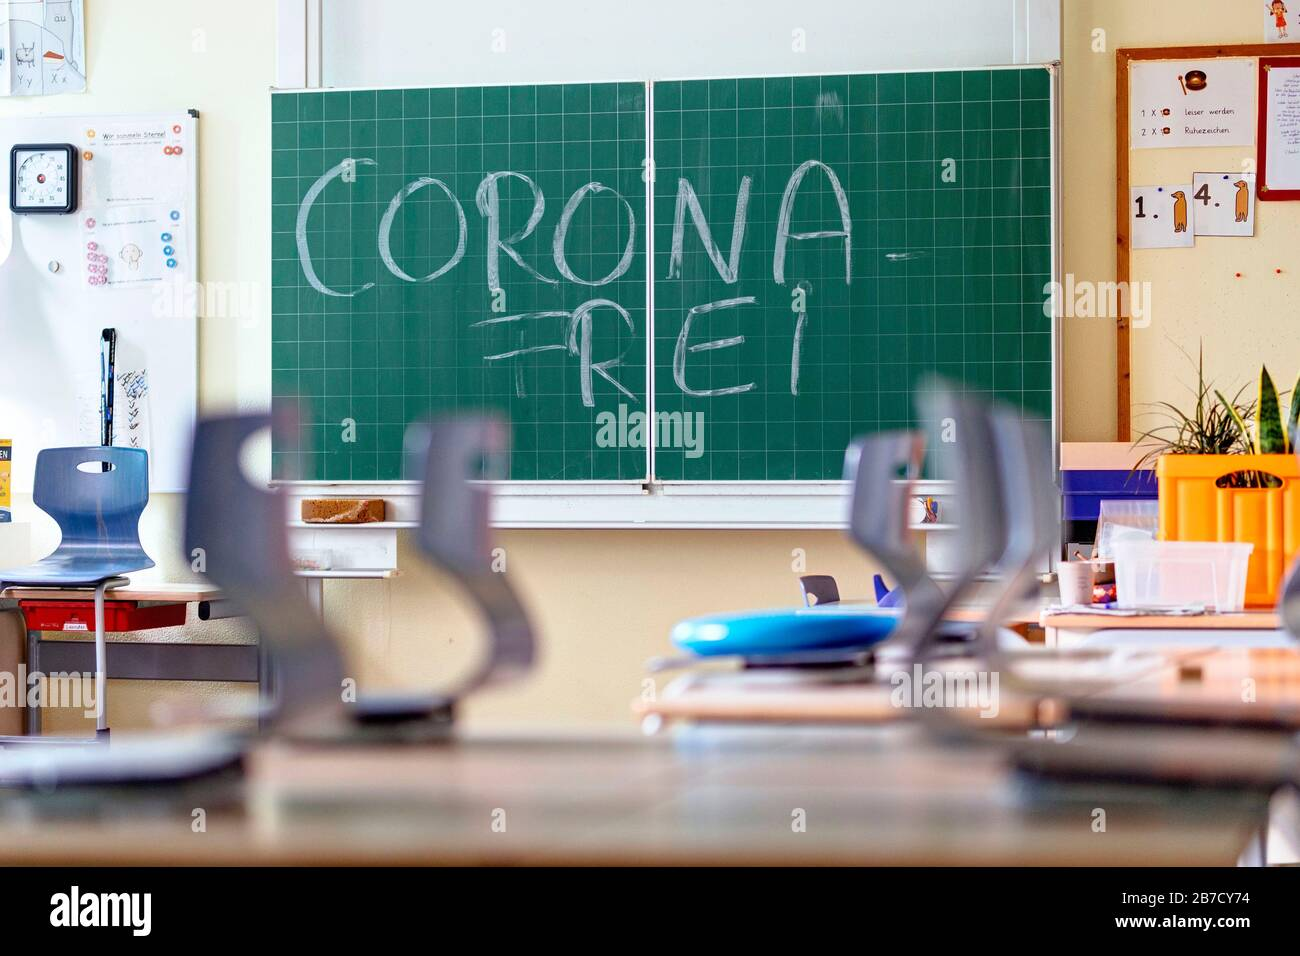 Corona-free at a school in Südstadt Cologne (Germany) Stock Photo